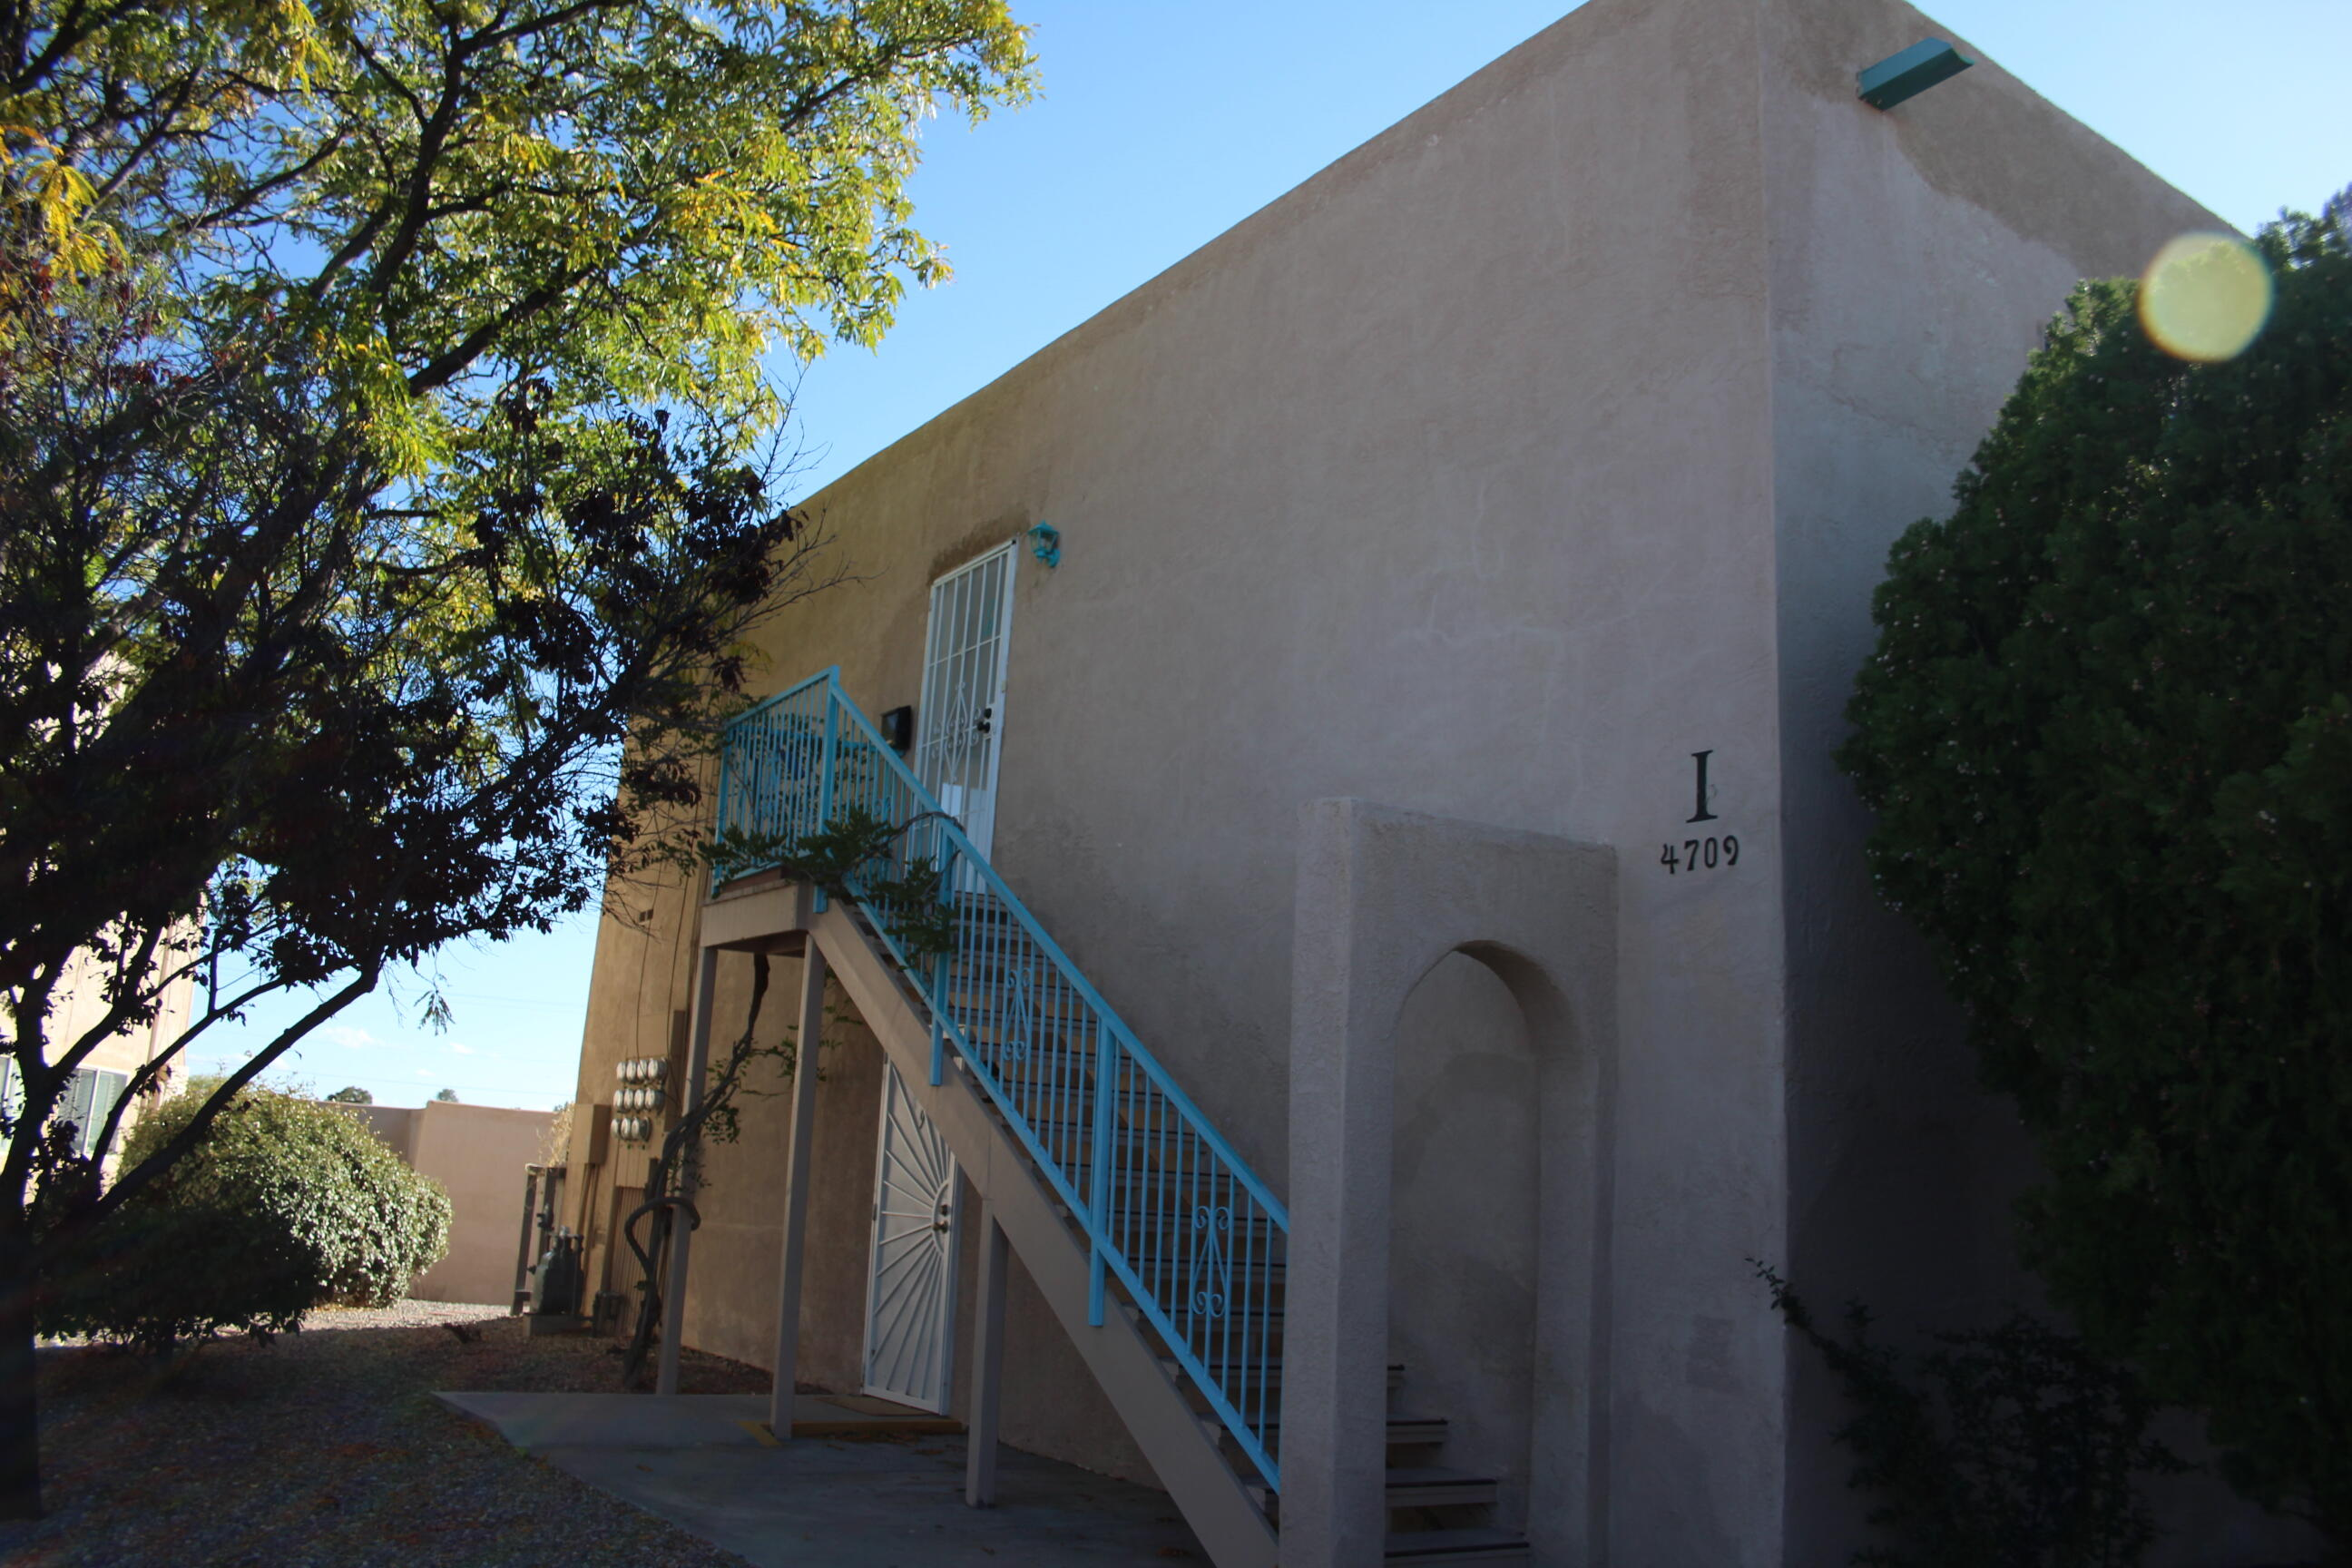 A second story 1 Bed 1 Bath Unit in the popular area of Paradise Hills Country Club.  Unit has a carport and a closed storage. HOA covers HVAC system, roof, exterior and has monthly statements and assessments for included utilities.  Owner only pays for electricity